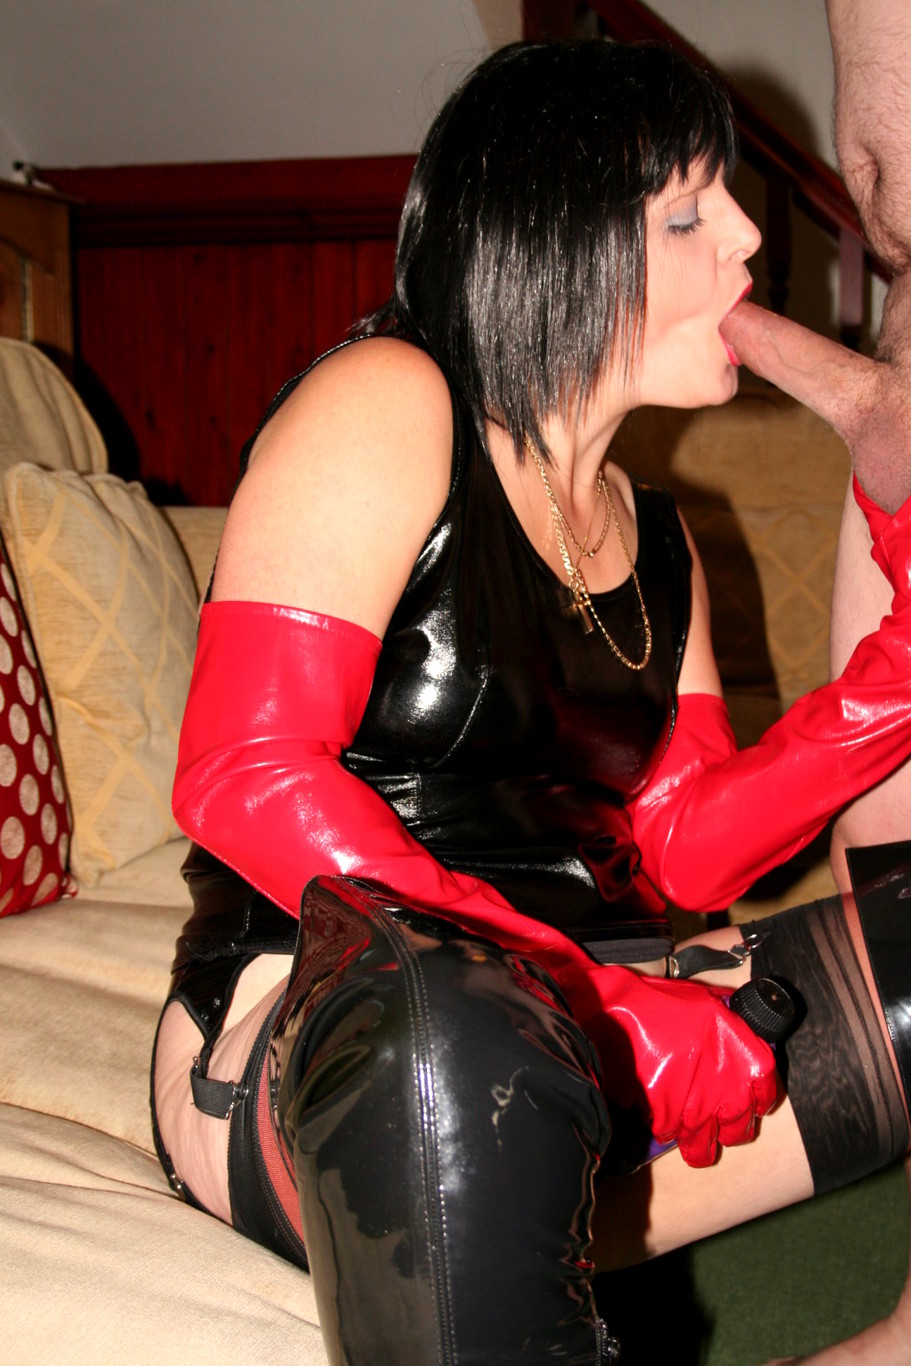 Spicy Tattooed Chick In Leather Pants & Boots Fucking!